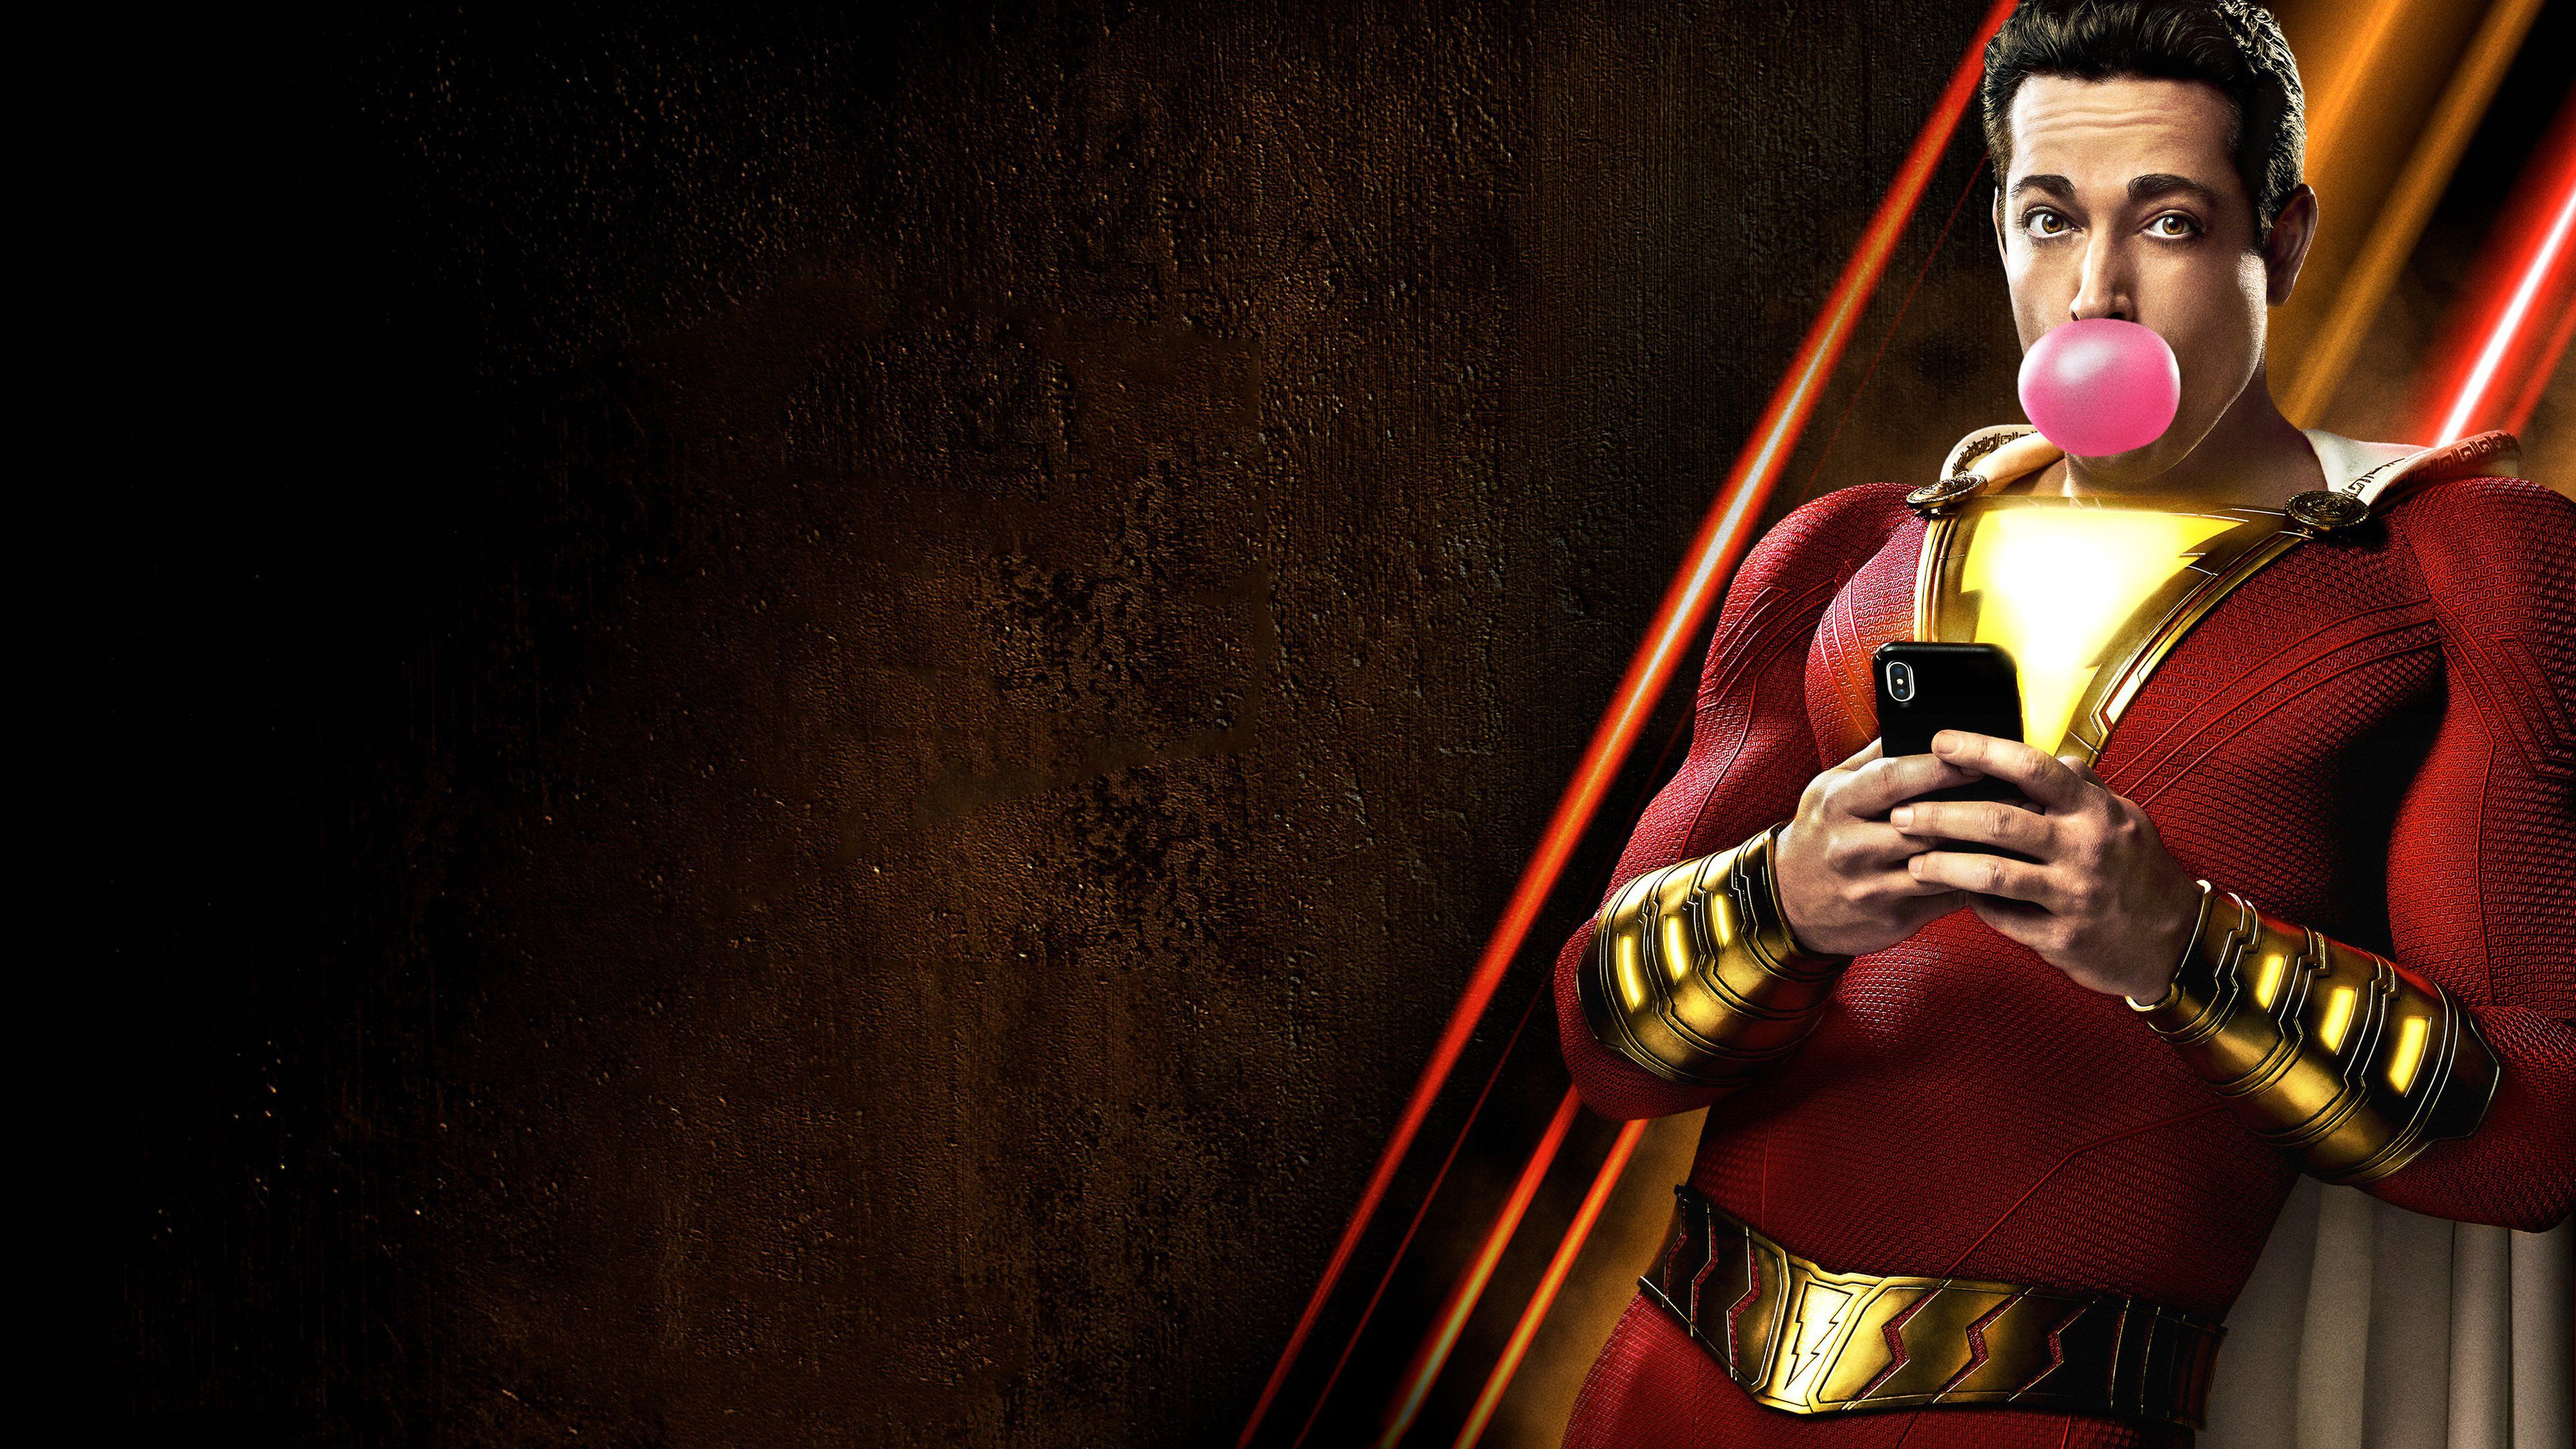 Shazam Wallpapers HD 30 Background Pictures 3840x2160